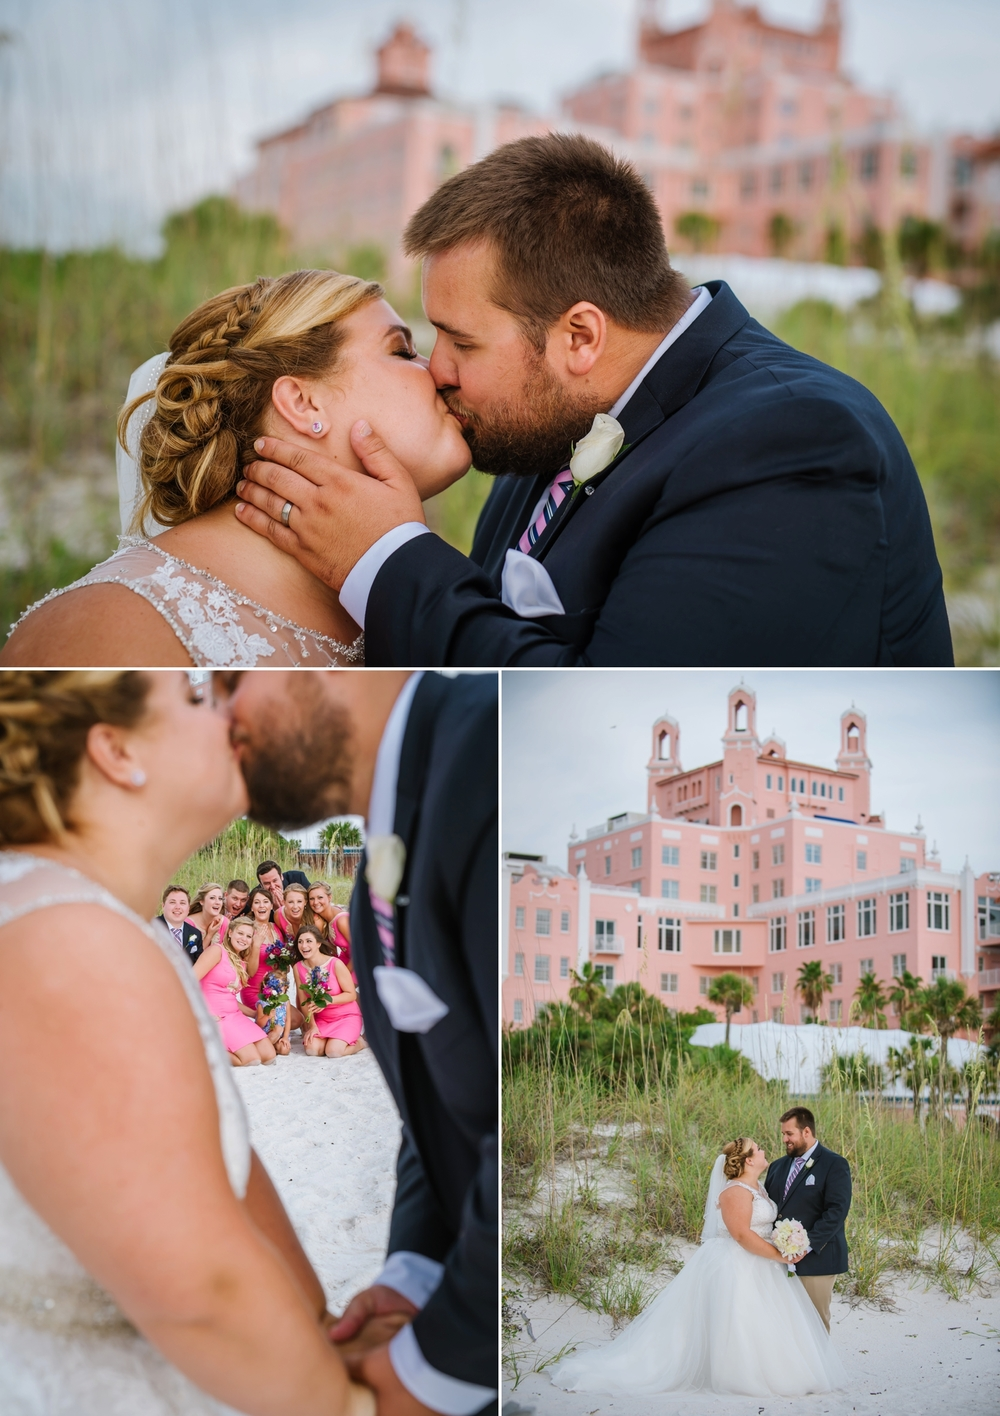 St-pete-wedding-photographer-don-caesar-ashlee-hamon_0020.jpg